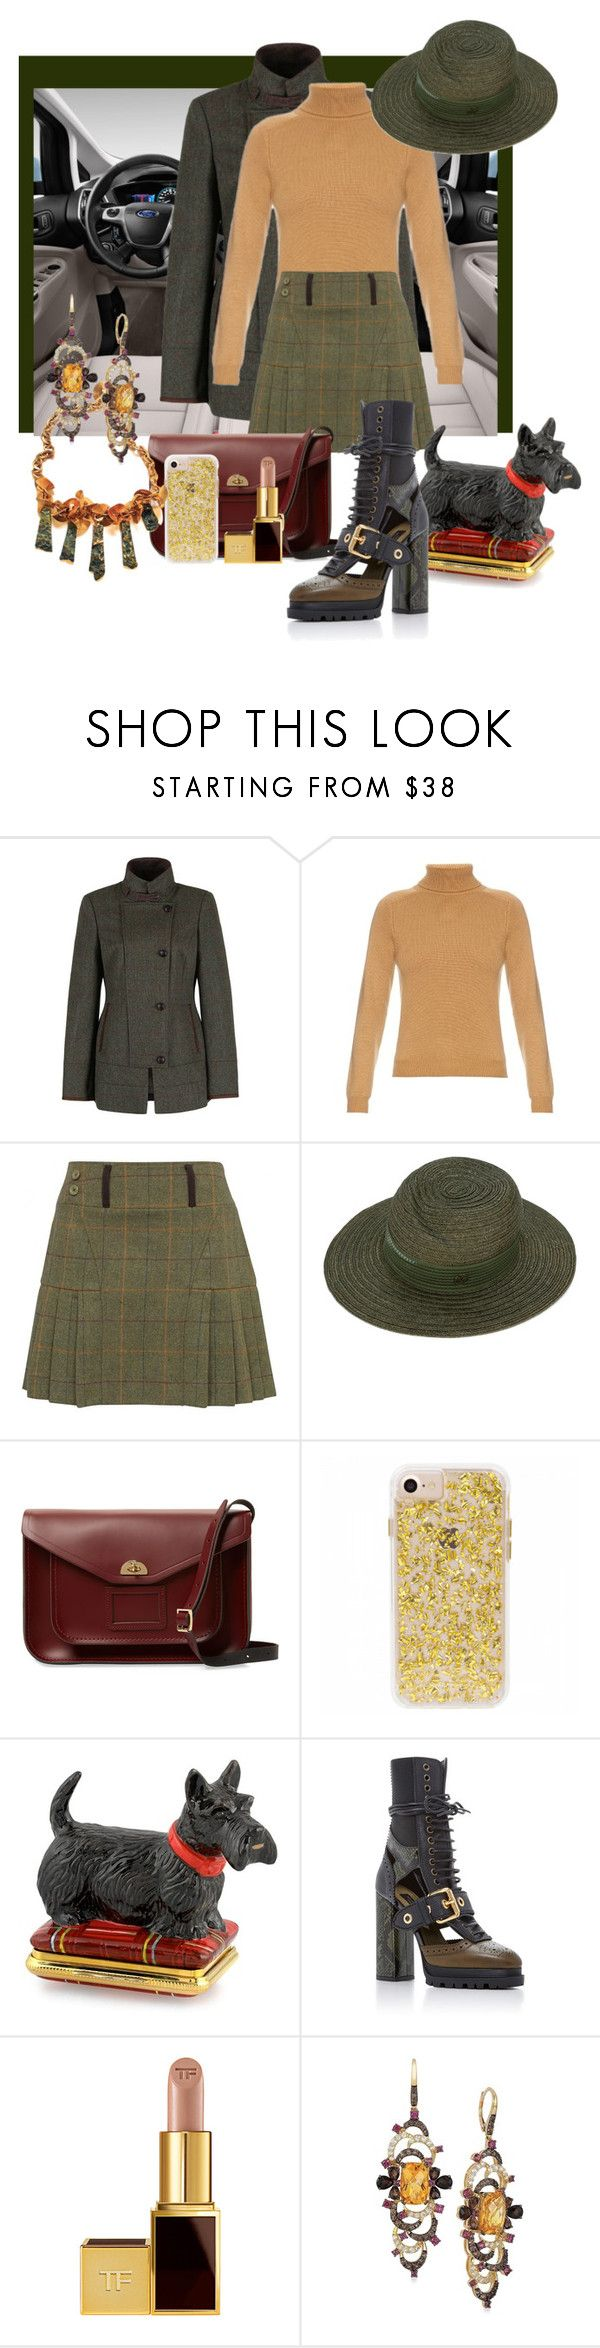 """""""DUBLIN COUNTRY DRIVE"""" by pursue-happiness ❤ liked on Polyvore featuring DUBARRY, Yves Saint Laurent, Maison Michel, The Cambridge Satchel Company, Halcyon Days, Burberry, Tom Ford, LeVian, country and plaidskirts"""